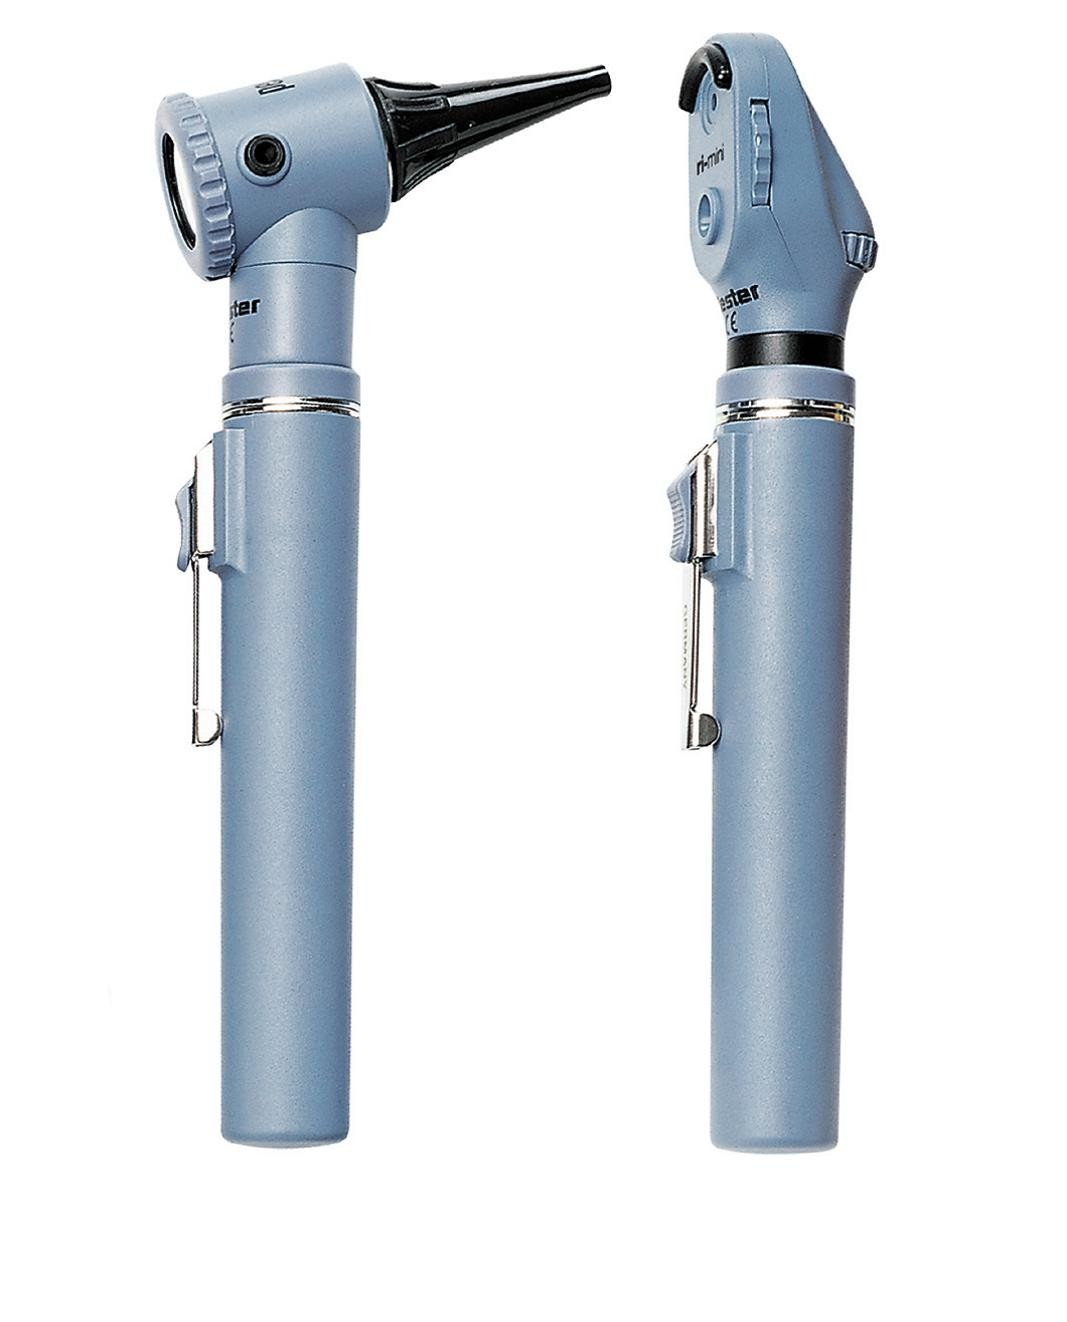 Riester Ri-mini F.O. Otosocpe/Ophthalmoscope HL 2.5V in case